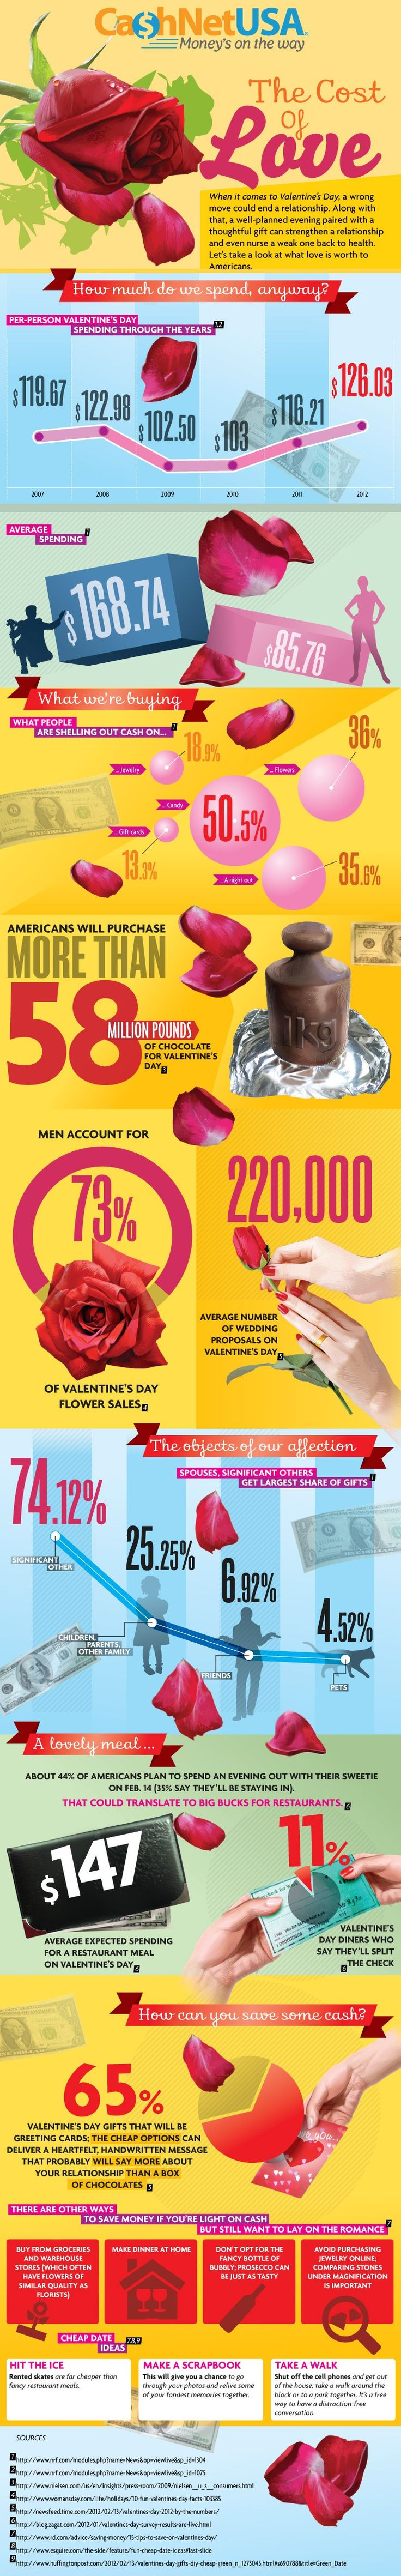 cost of valentine's day roses